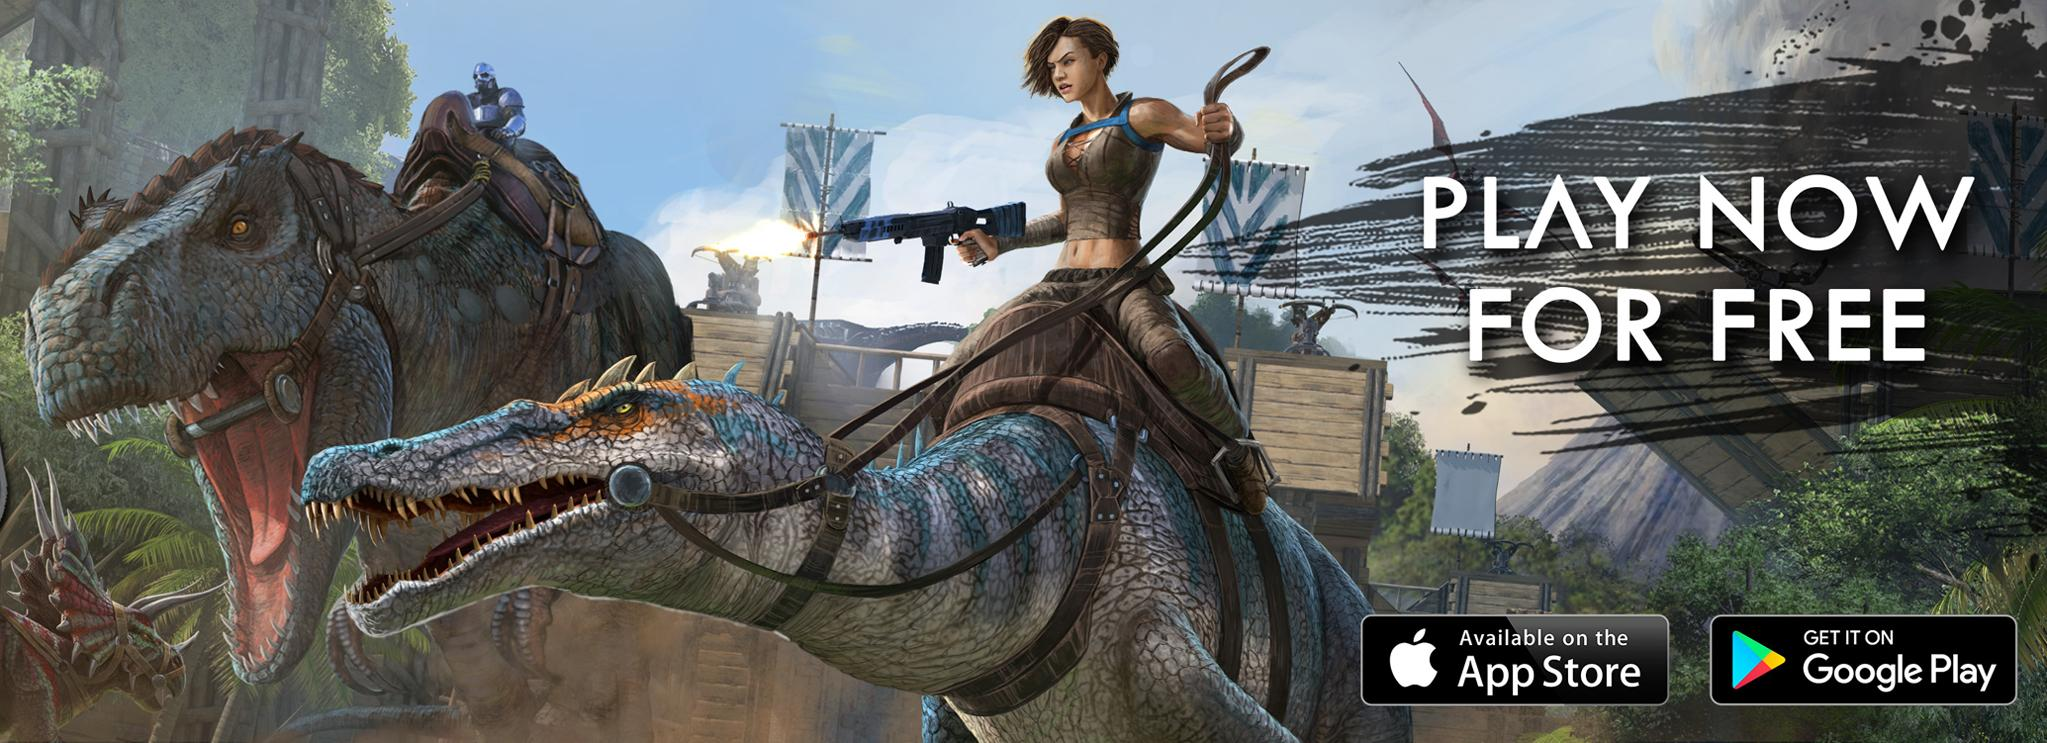 ARK: Survival Evolved Worldwide Release for iOS & Android! - ARK